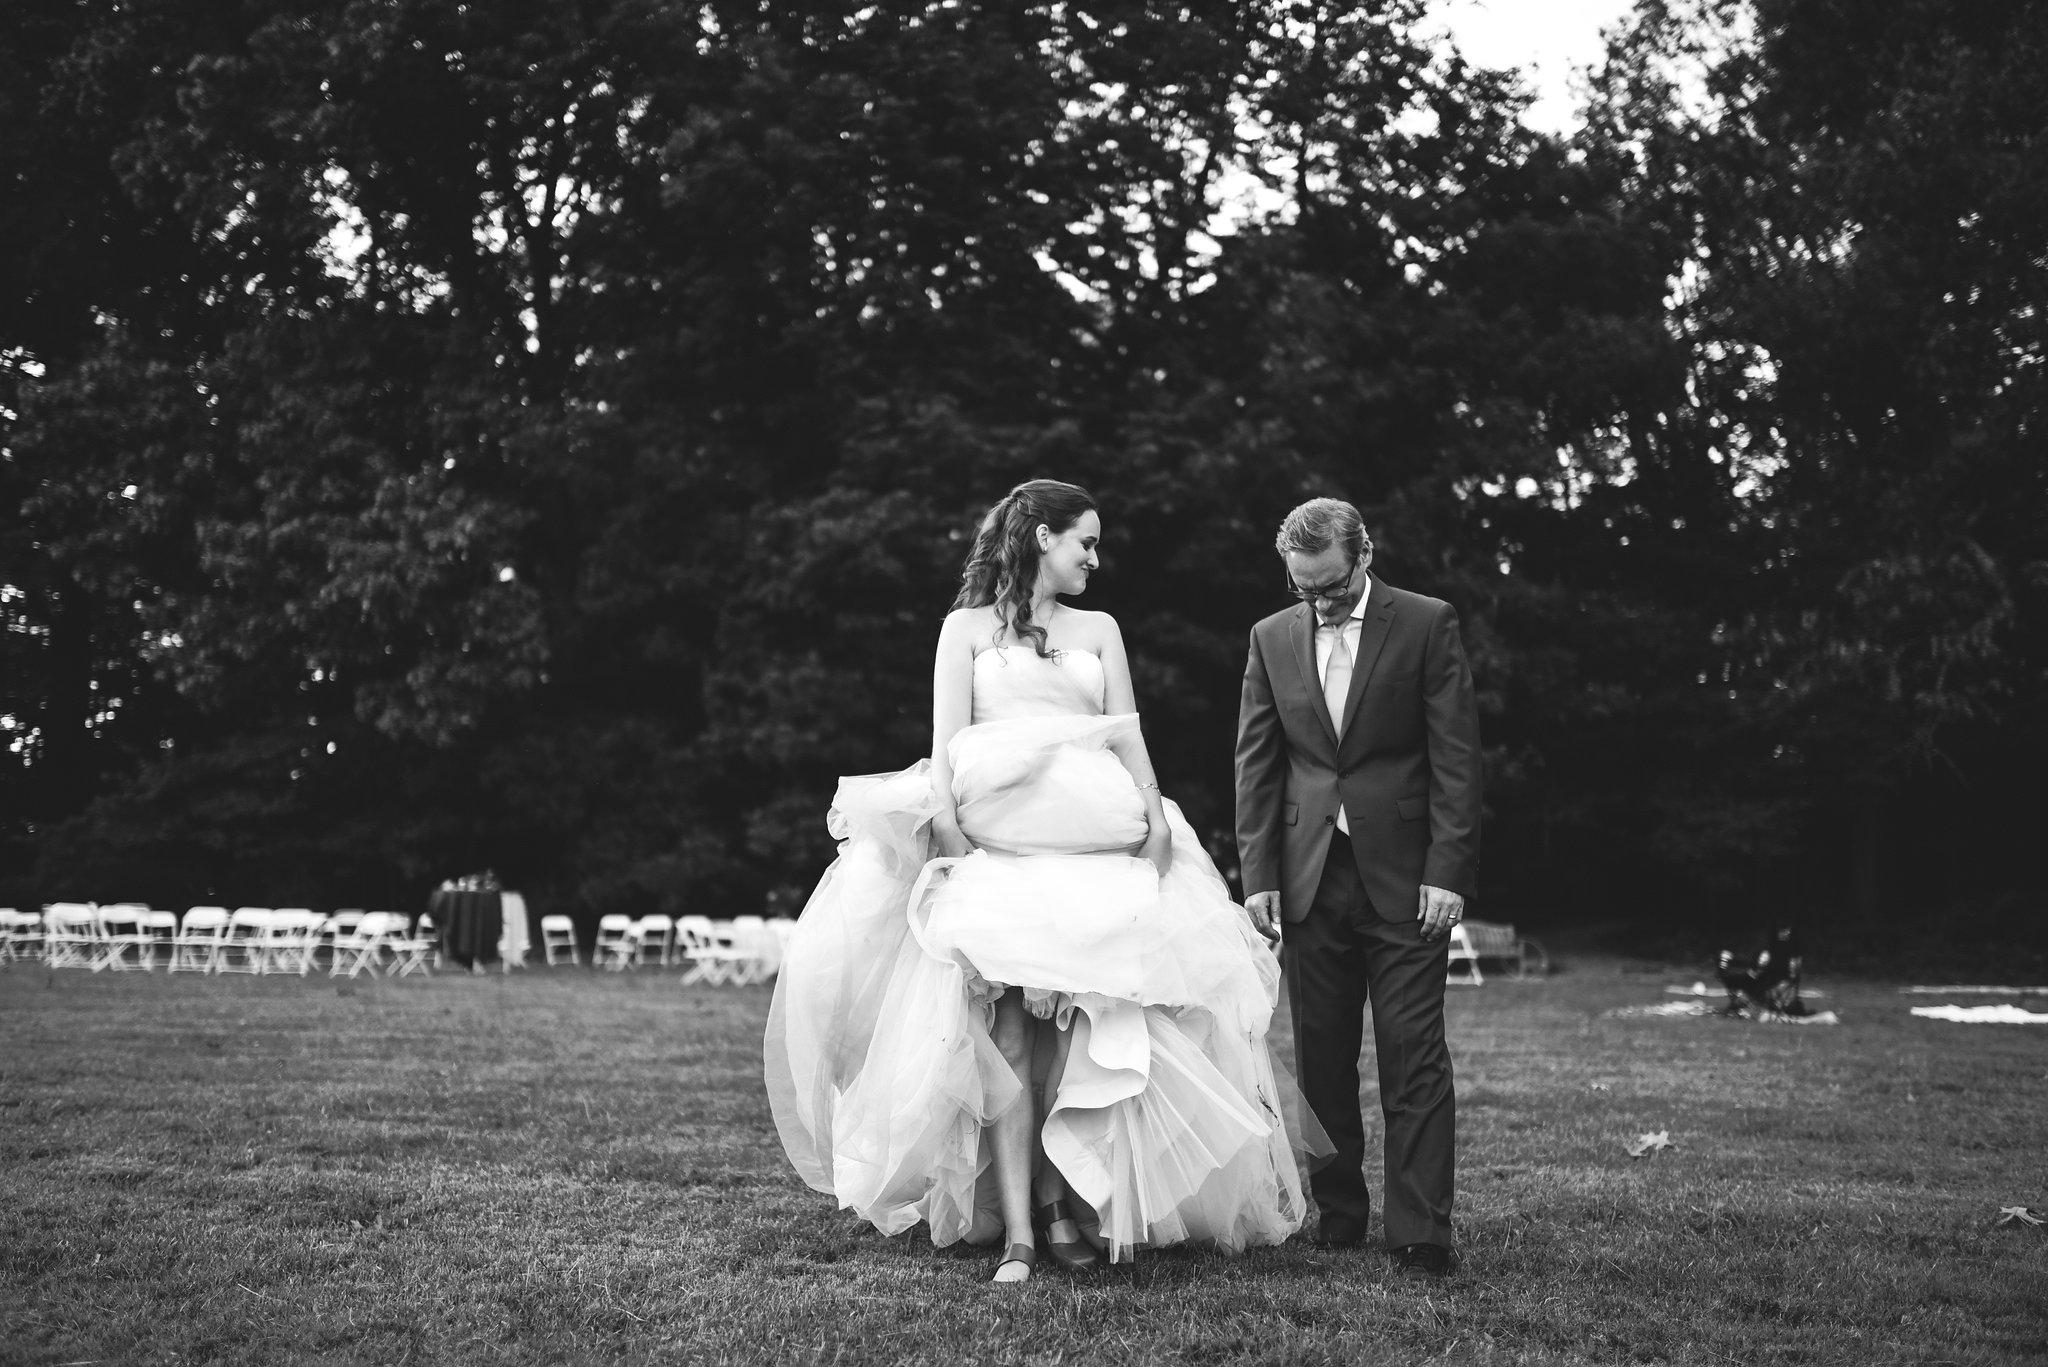 Vintage, DIY, Rustic, Germantown, Baltimore Wedding Photographer, Alternative, Casual, Outdoor Wedding, Church Wedding, Whimsical, Campground, Bride and Groom, Black and White Photo, Cute